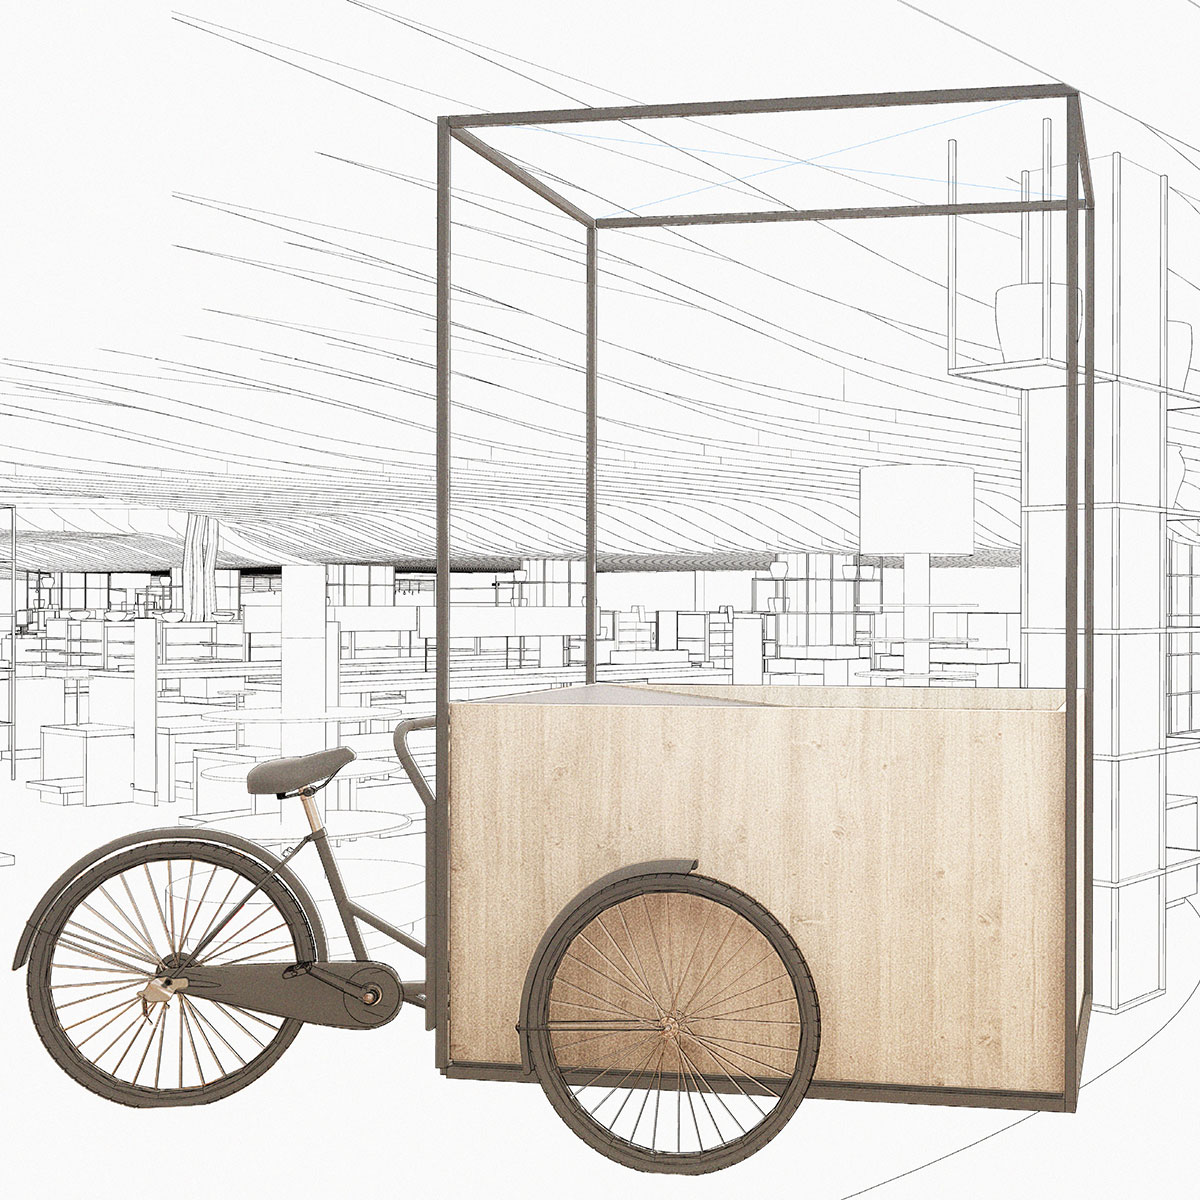 Cargo bike transformed into a waterbike as part of the design concept for TAX FREE by Johannes Torpe Studios